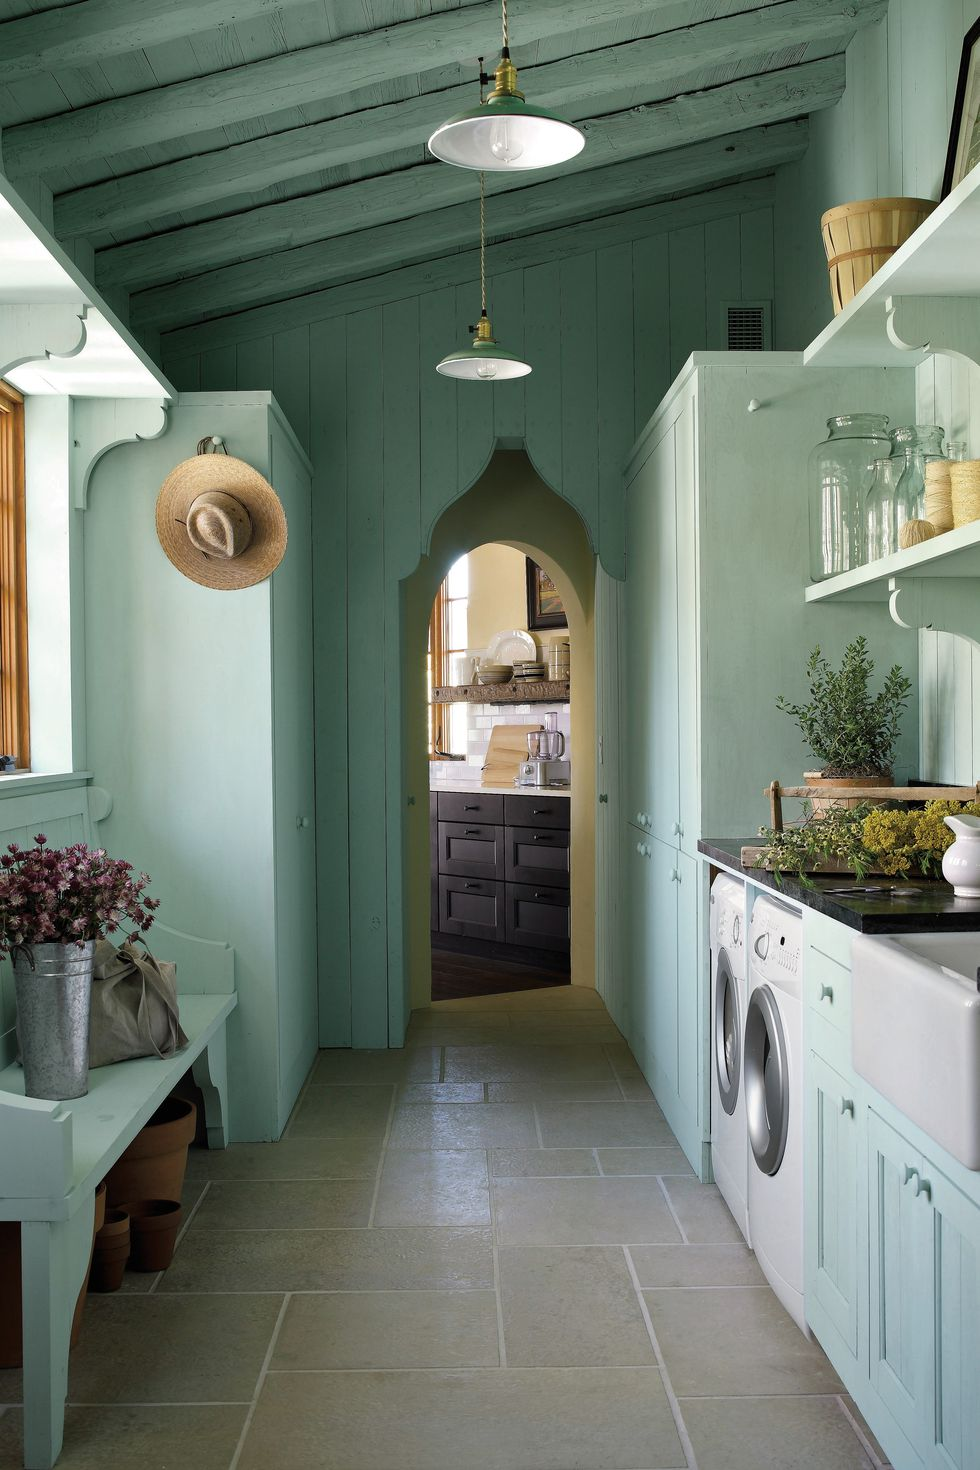 Breathtaking architecture and green color in a laundry room by architect Michael Imber. Come enjoy Traditional Laundry Room and Mud Room Design Ideas, Resources, and Humor Quotes!